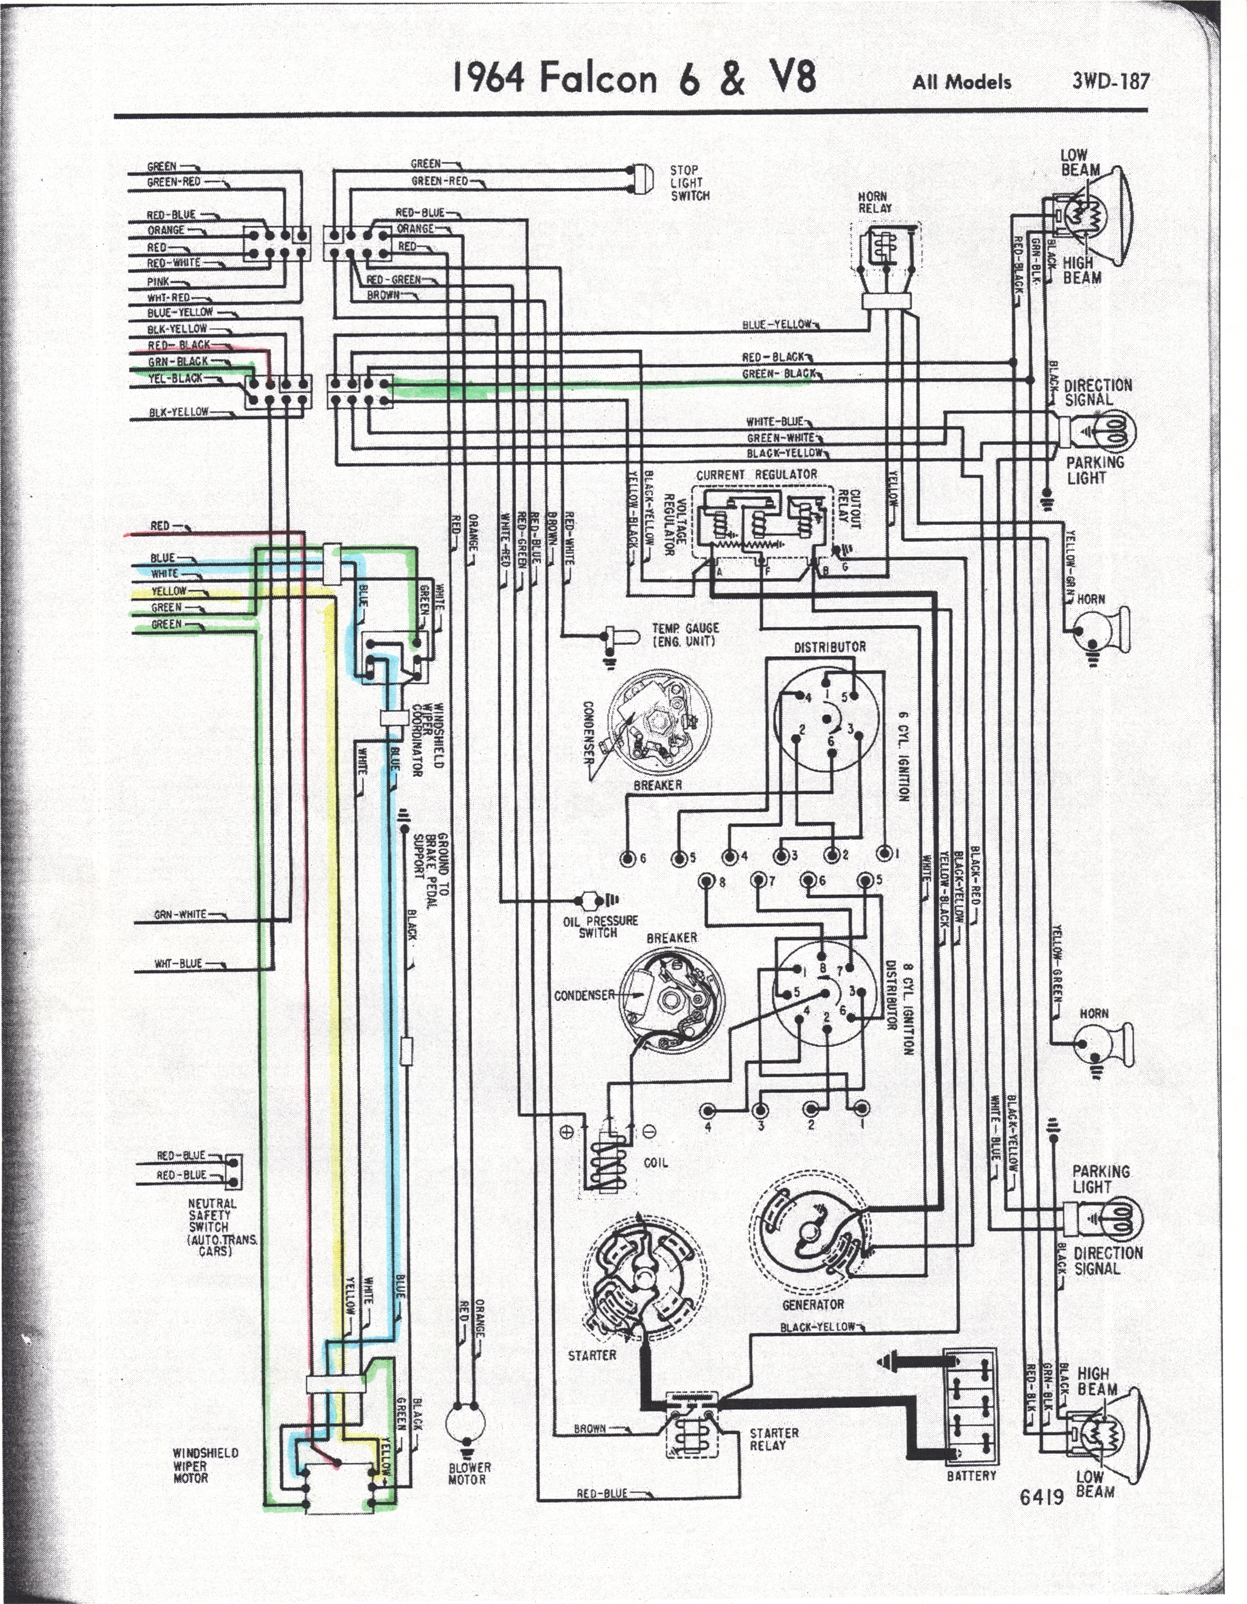 Falcon Diagrams Audi Wiper Motor Wiring Diagram 64 Drawing B Windshield Wipers